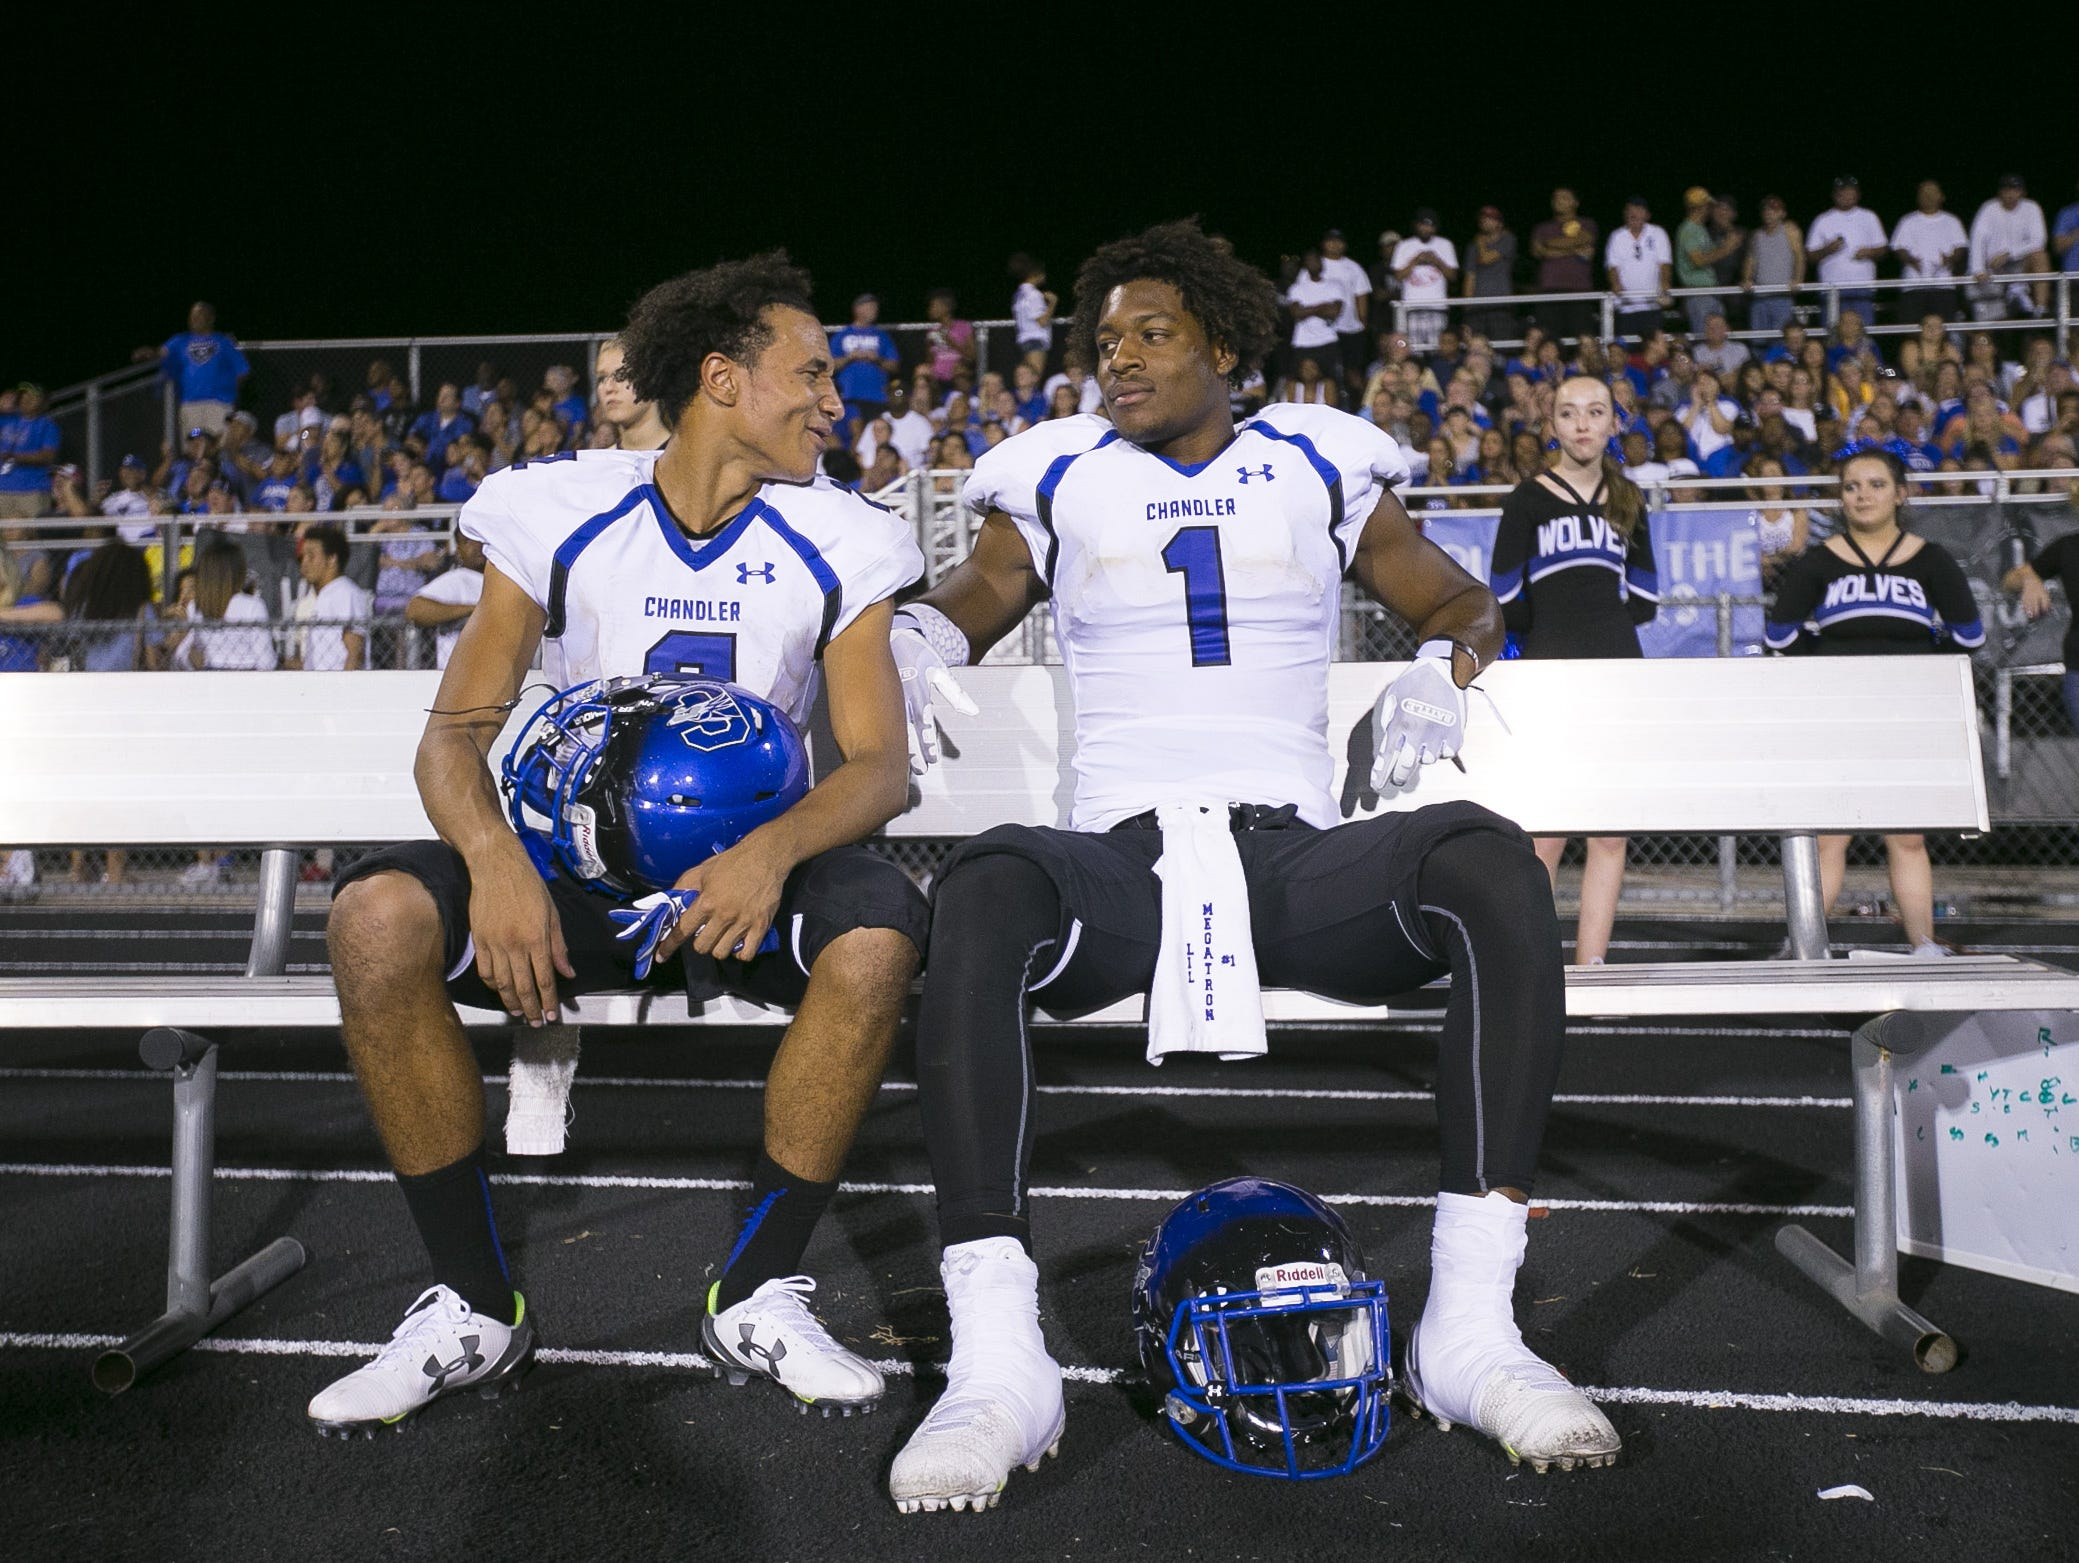 Chandler's Chase Lucas (2) and N'Keal Harry share a laugh up 35-0 early in the second quarter against Pinnacle at Pinnacle High School in Phoenix, AZ on Aug. 20, 2015.